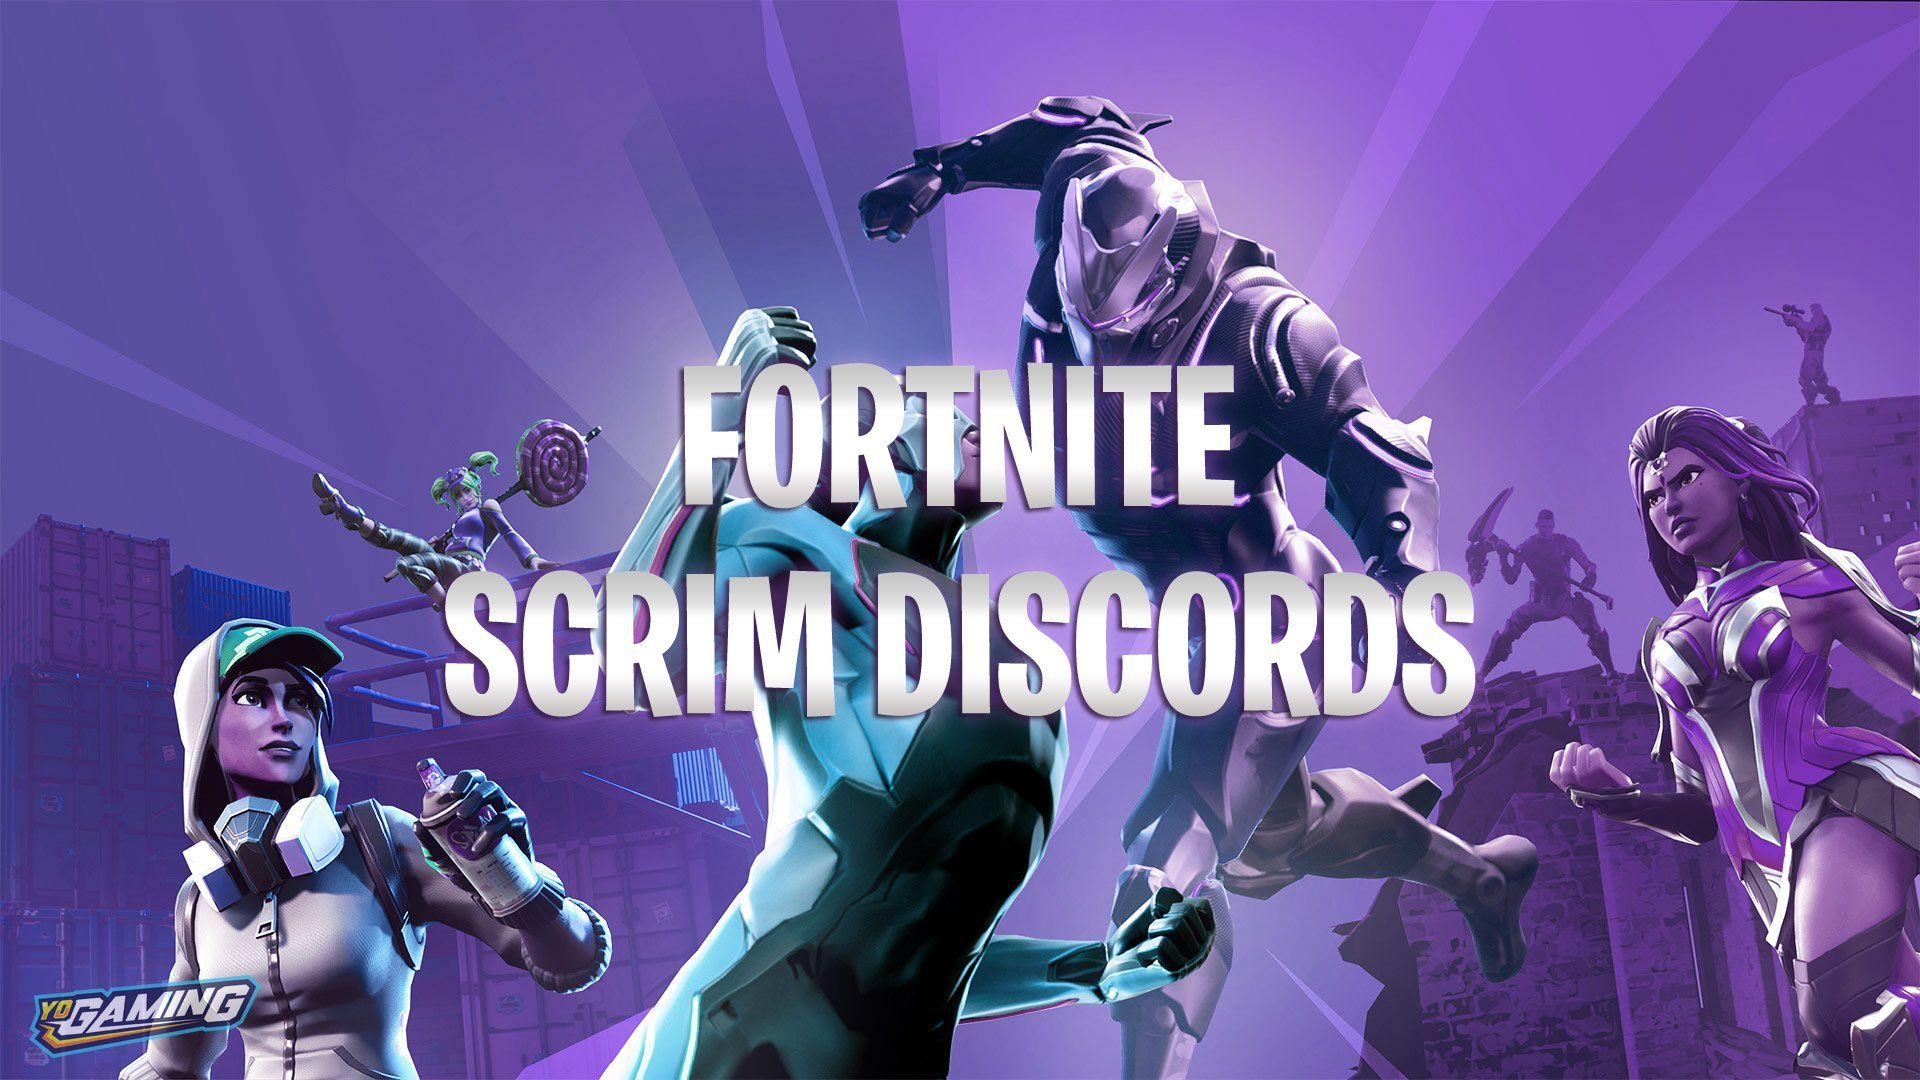 Fortnite Discord With Scrims And Pro Scrims Fortnite Discord Duo Enigma's discord dedicated to fortnite zone wars and other creative games. pro scrims fortnite discord